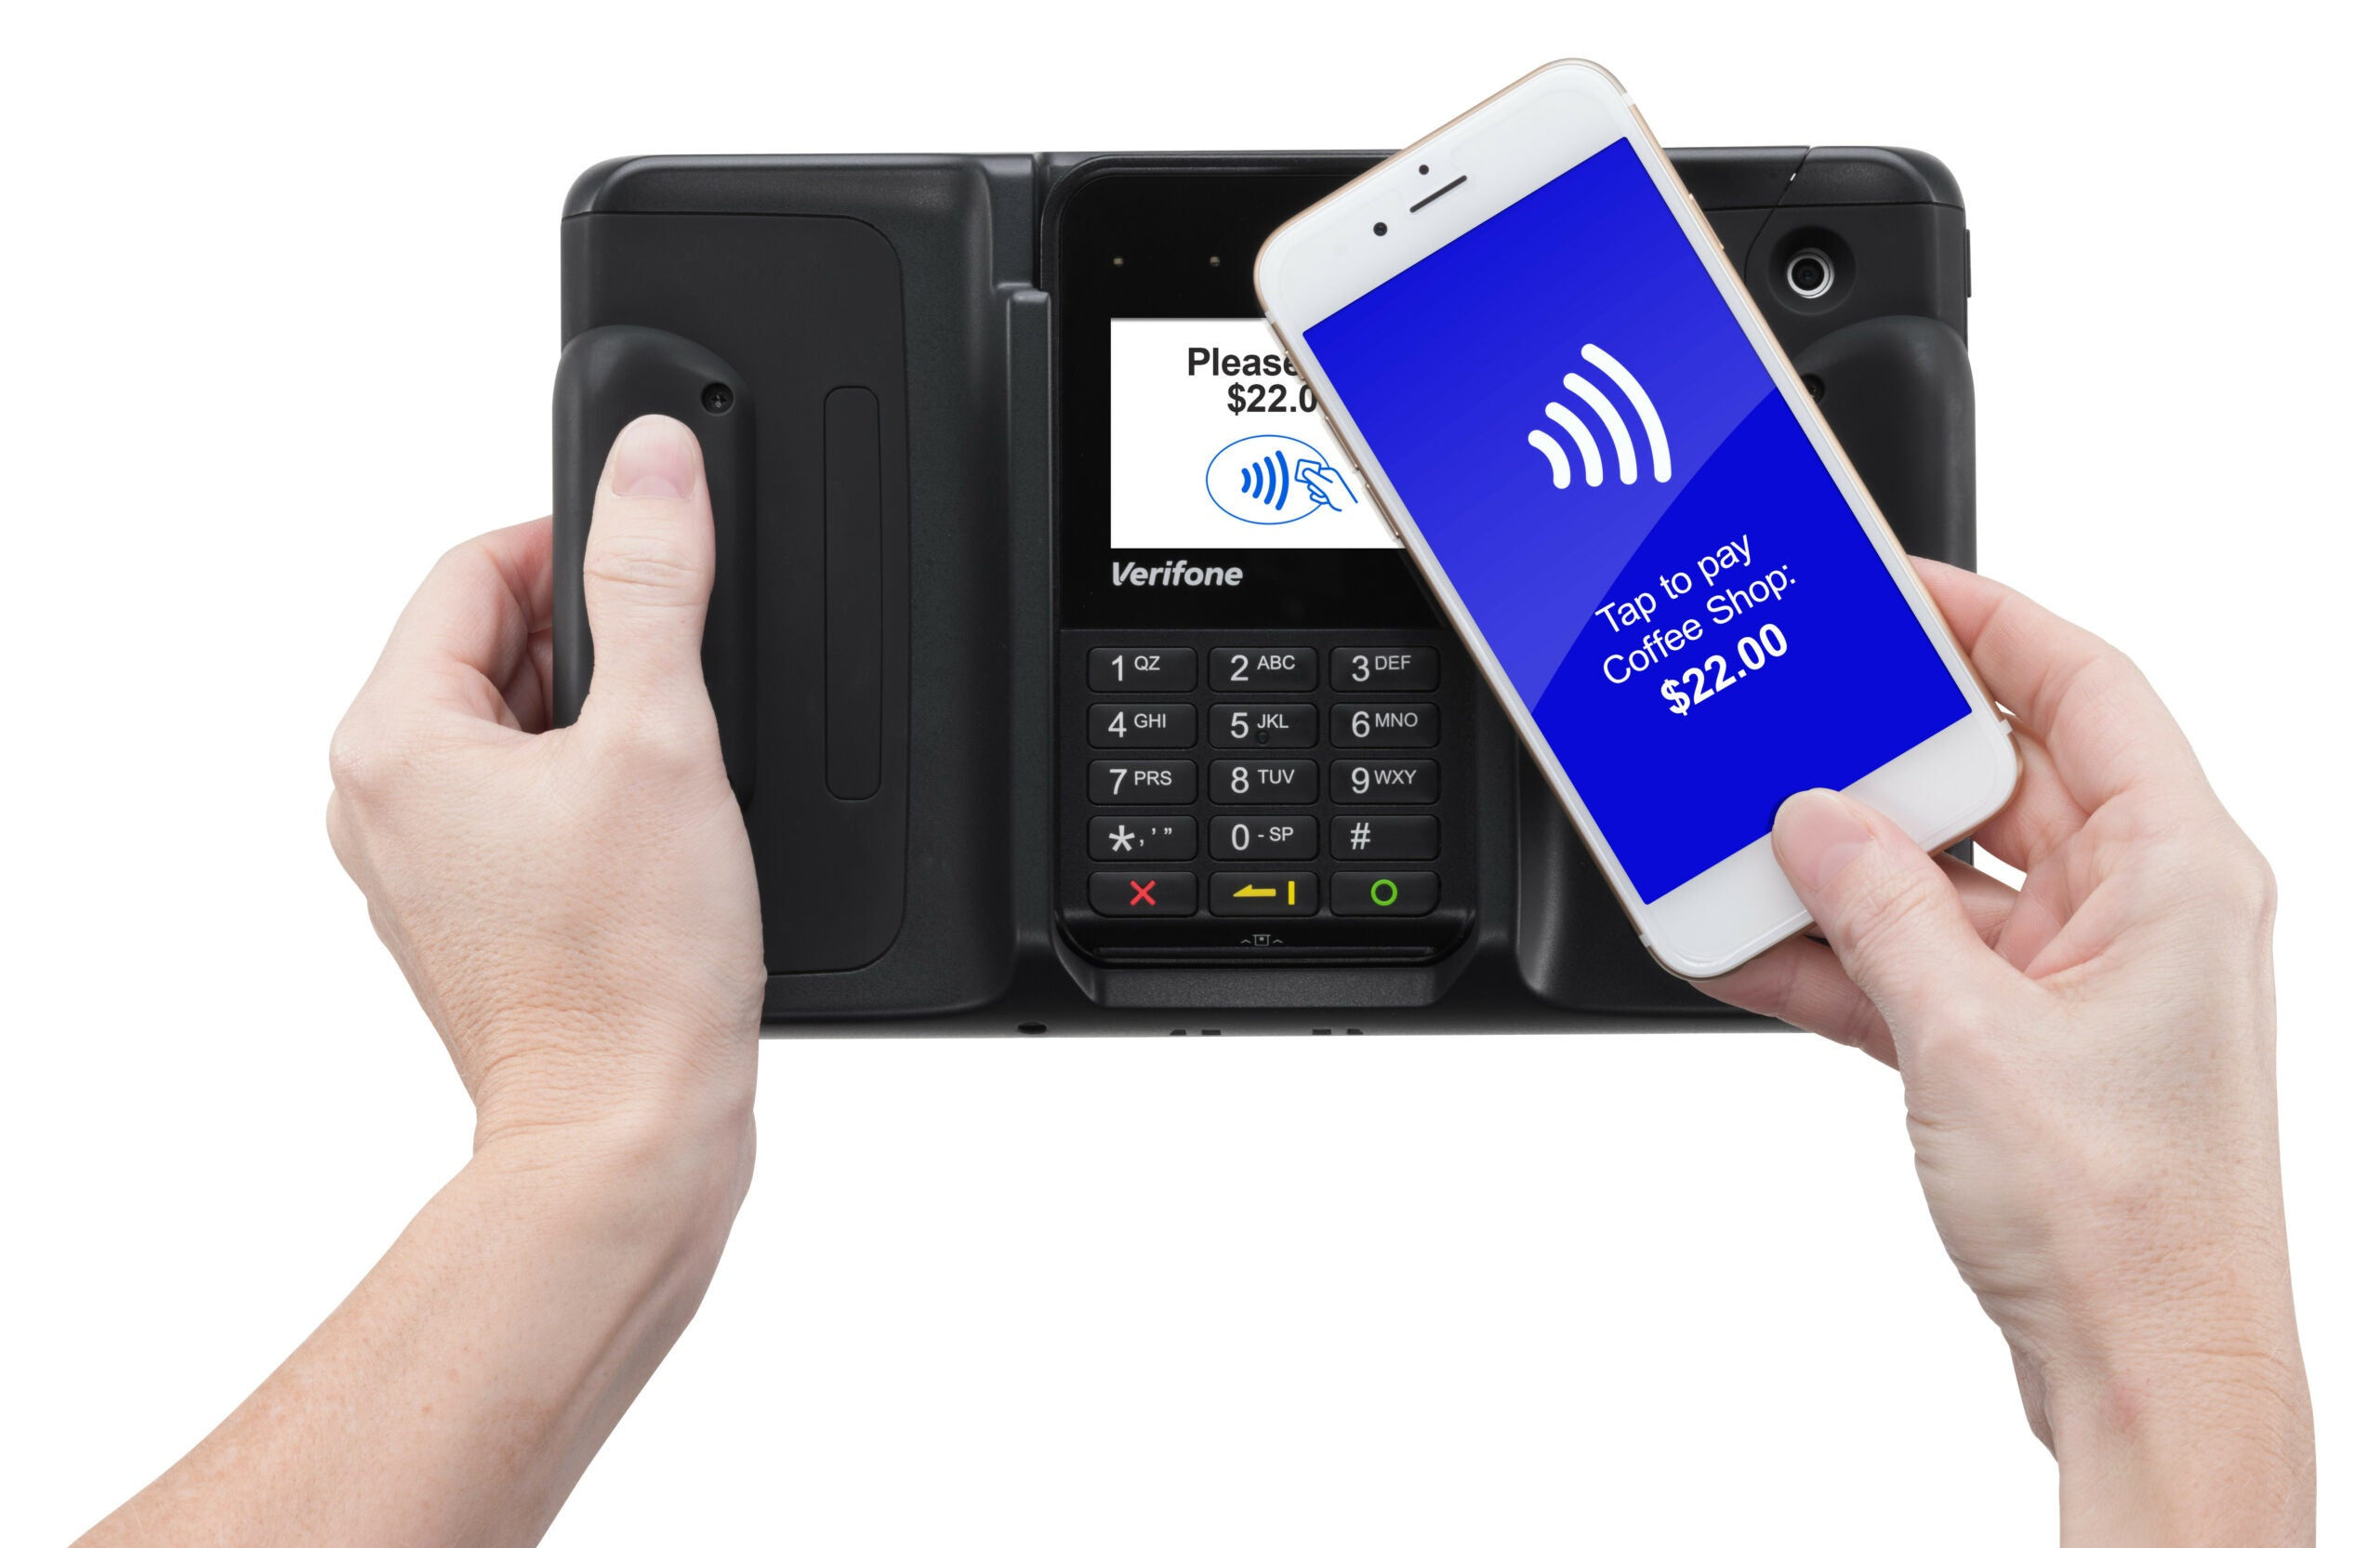 Verifone's New Terminal Could Make Paying For Dinner Safer, More Convenient